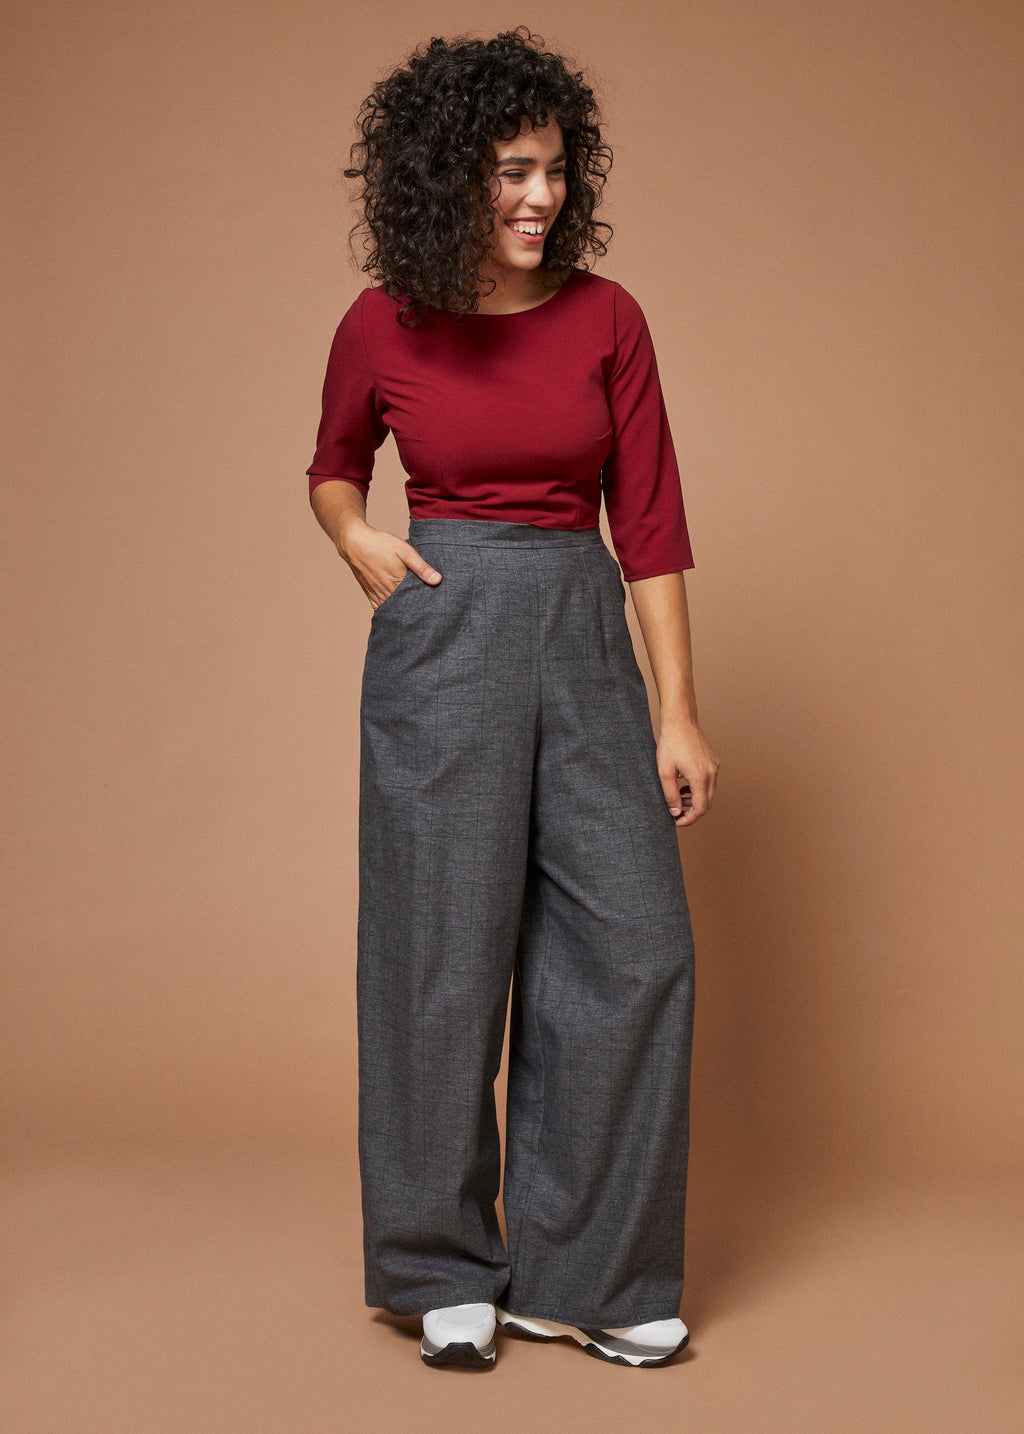 Rock Steady | Boatneck Crop Top | Burgundy